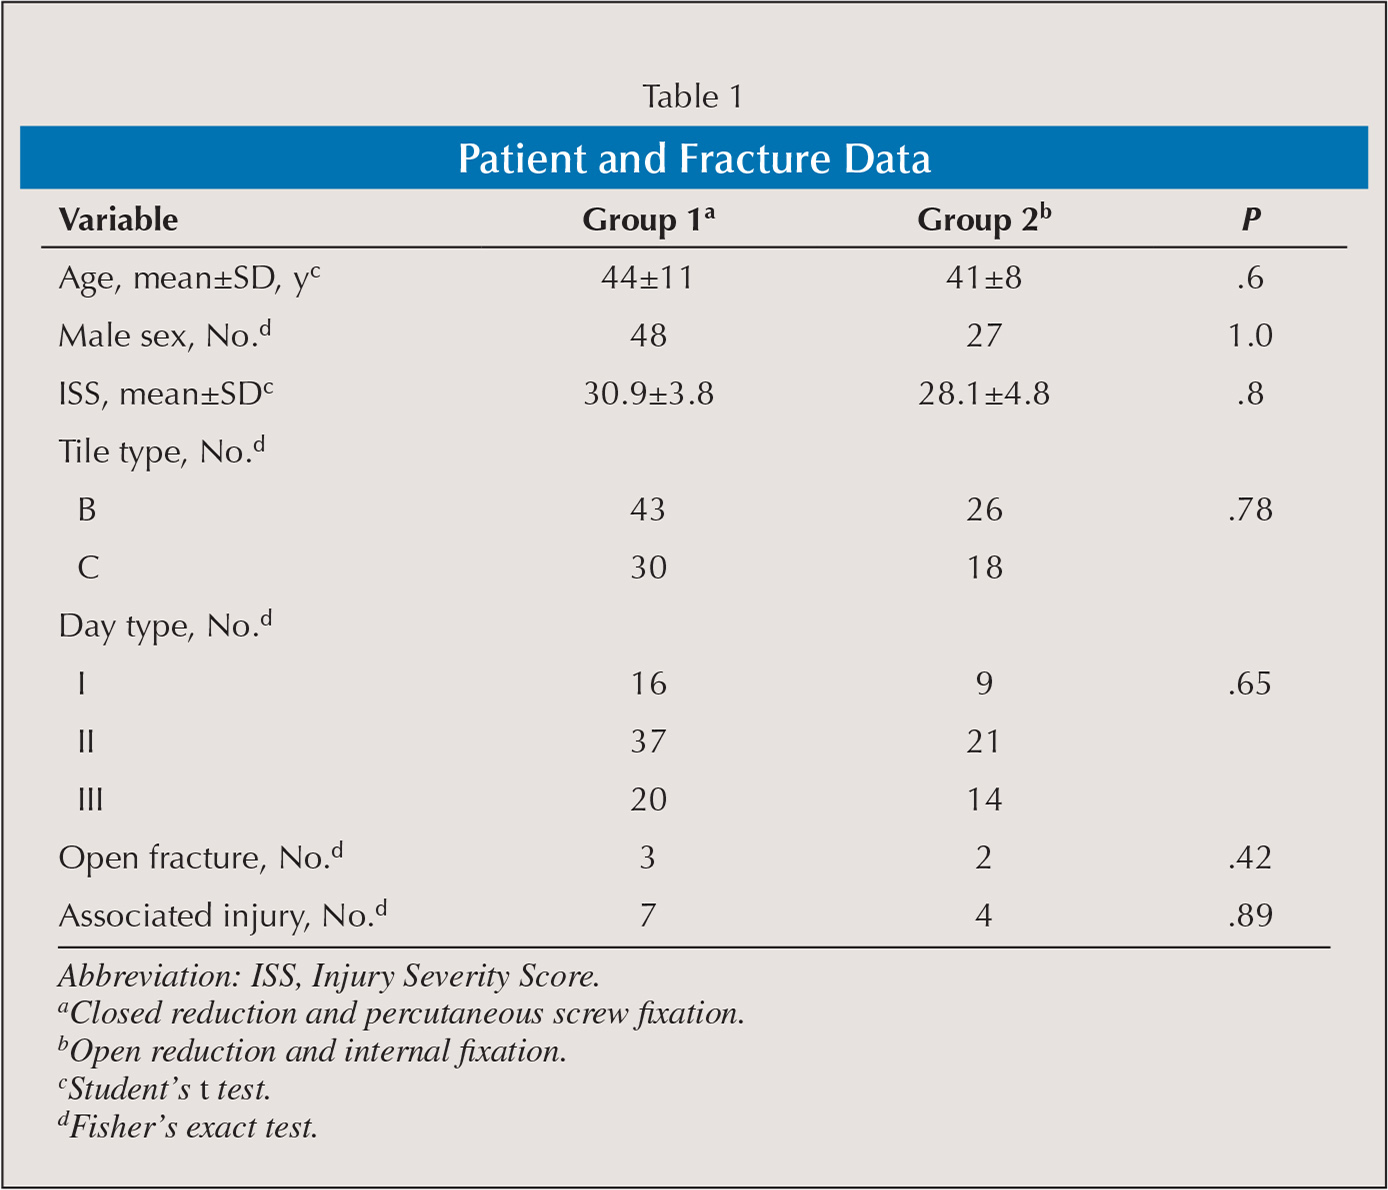 Patient and Fracture Data